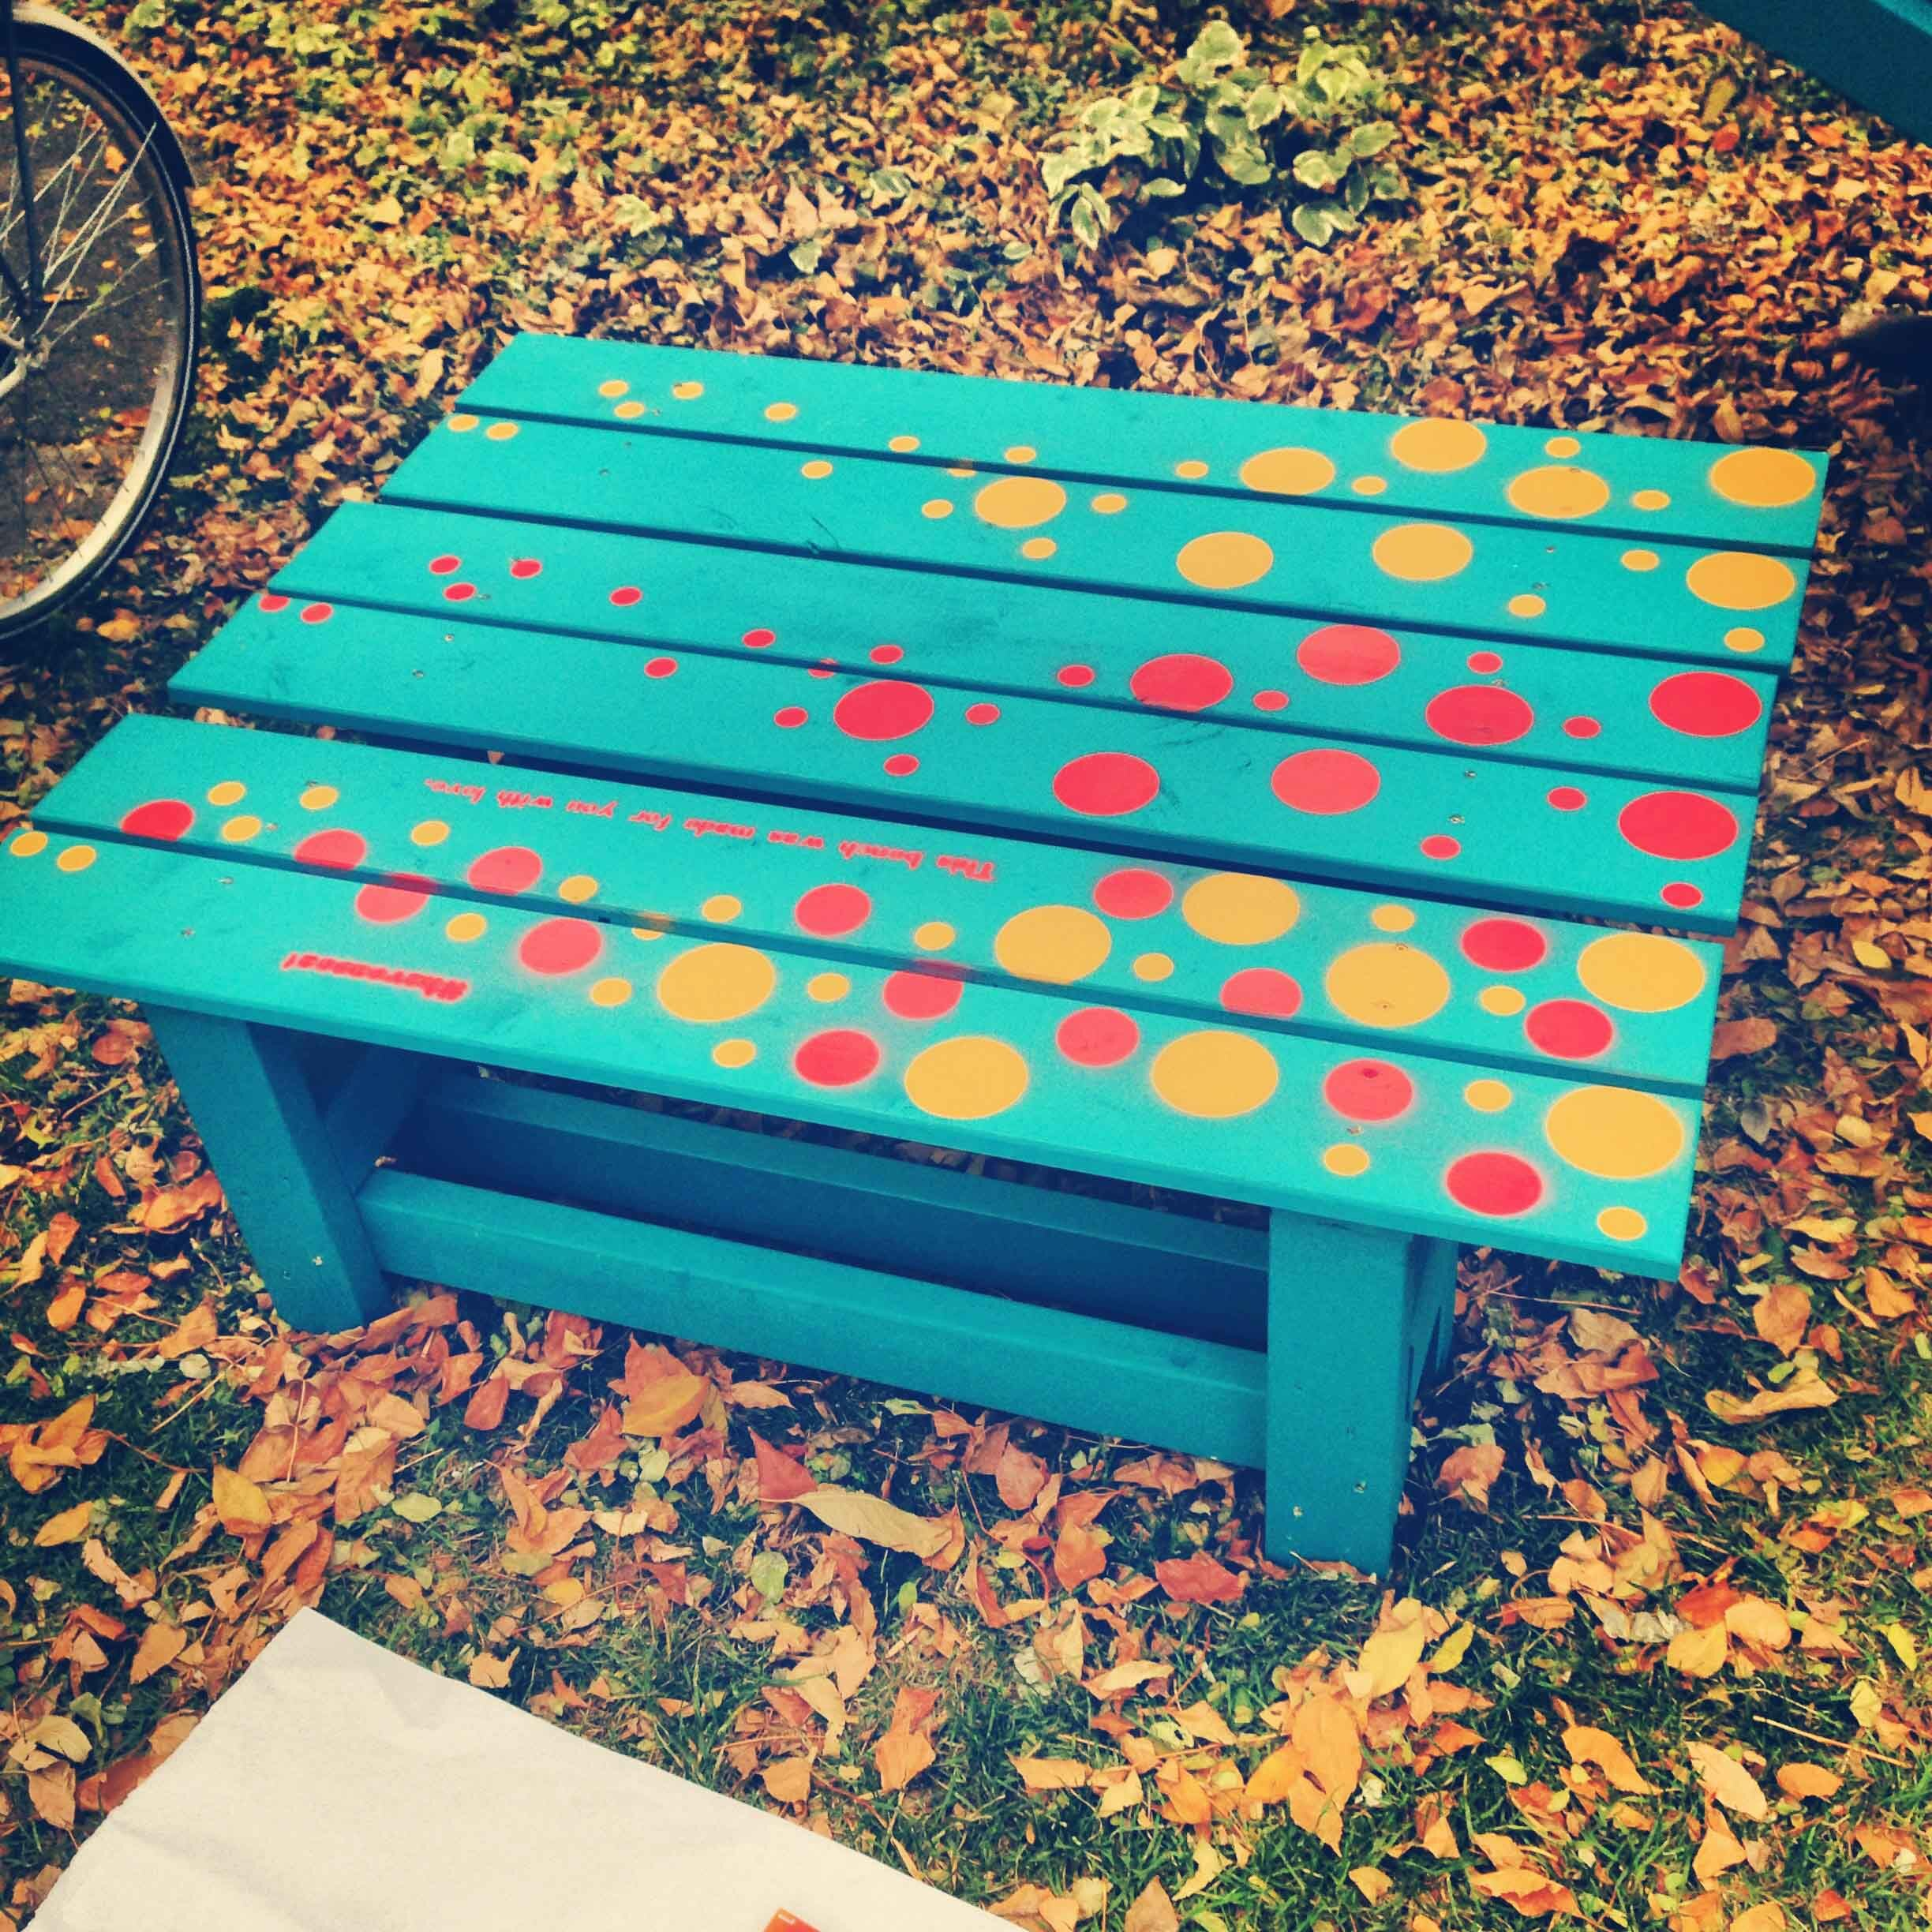 The Bench Project / Twitter